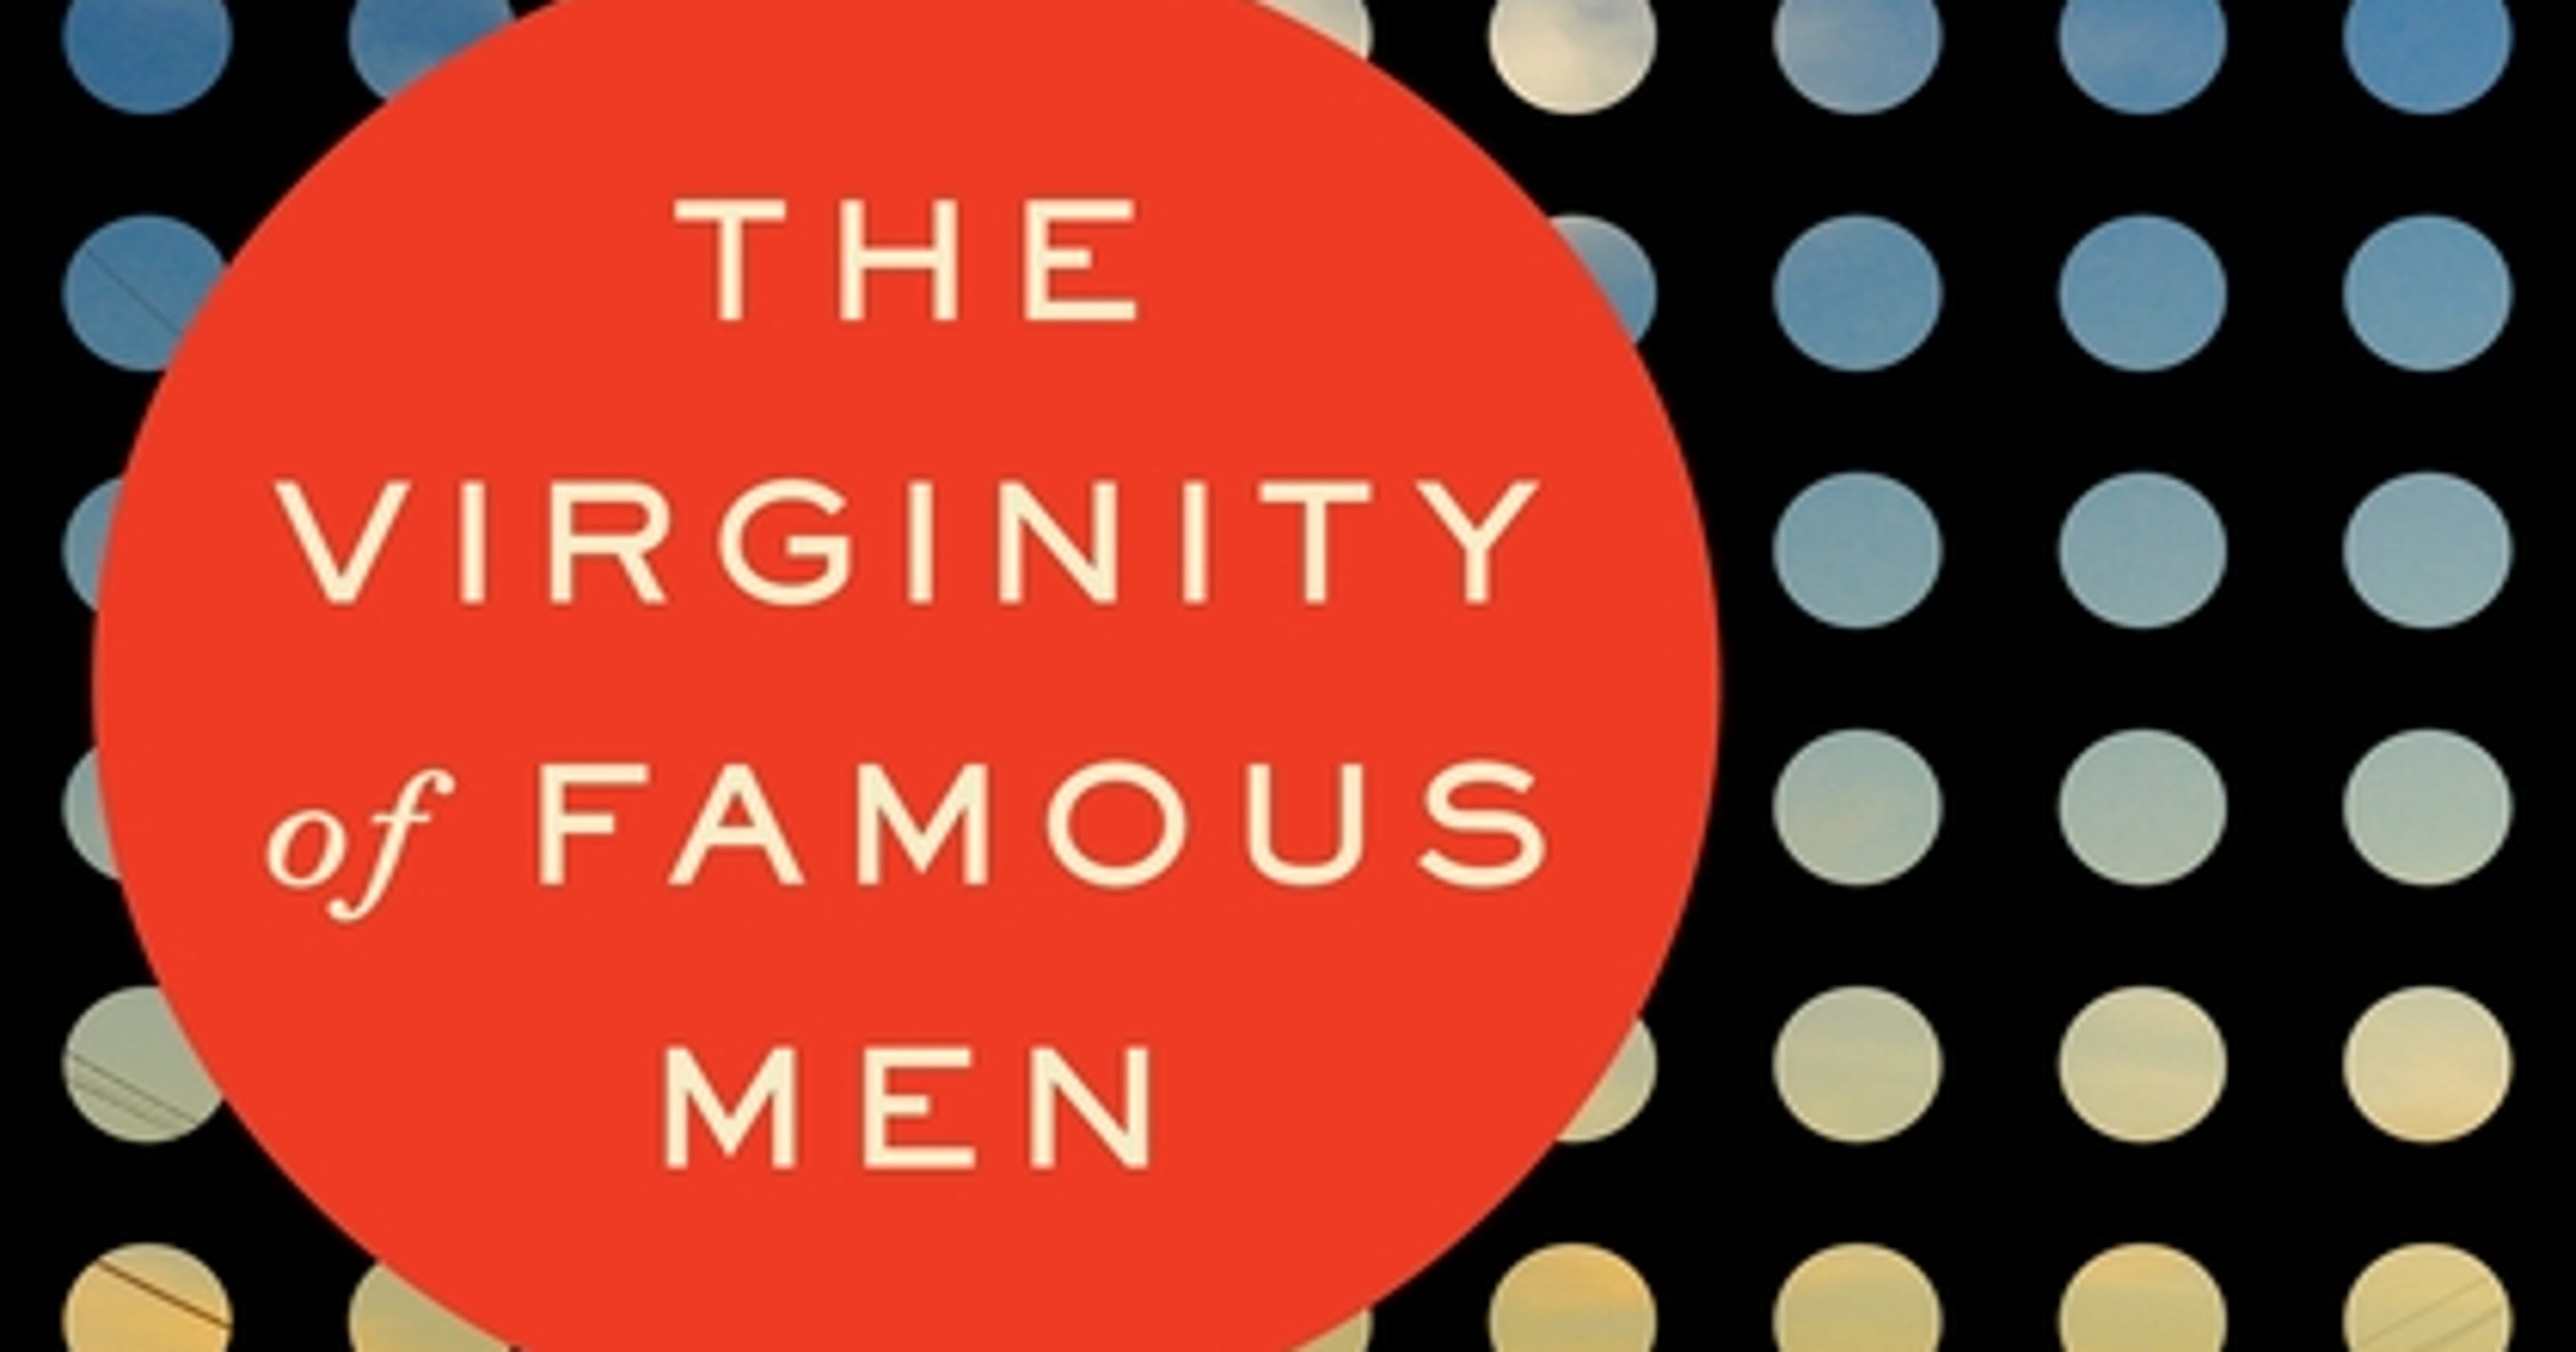 Book Review: 'The Virginity of Famous Men'